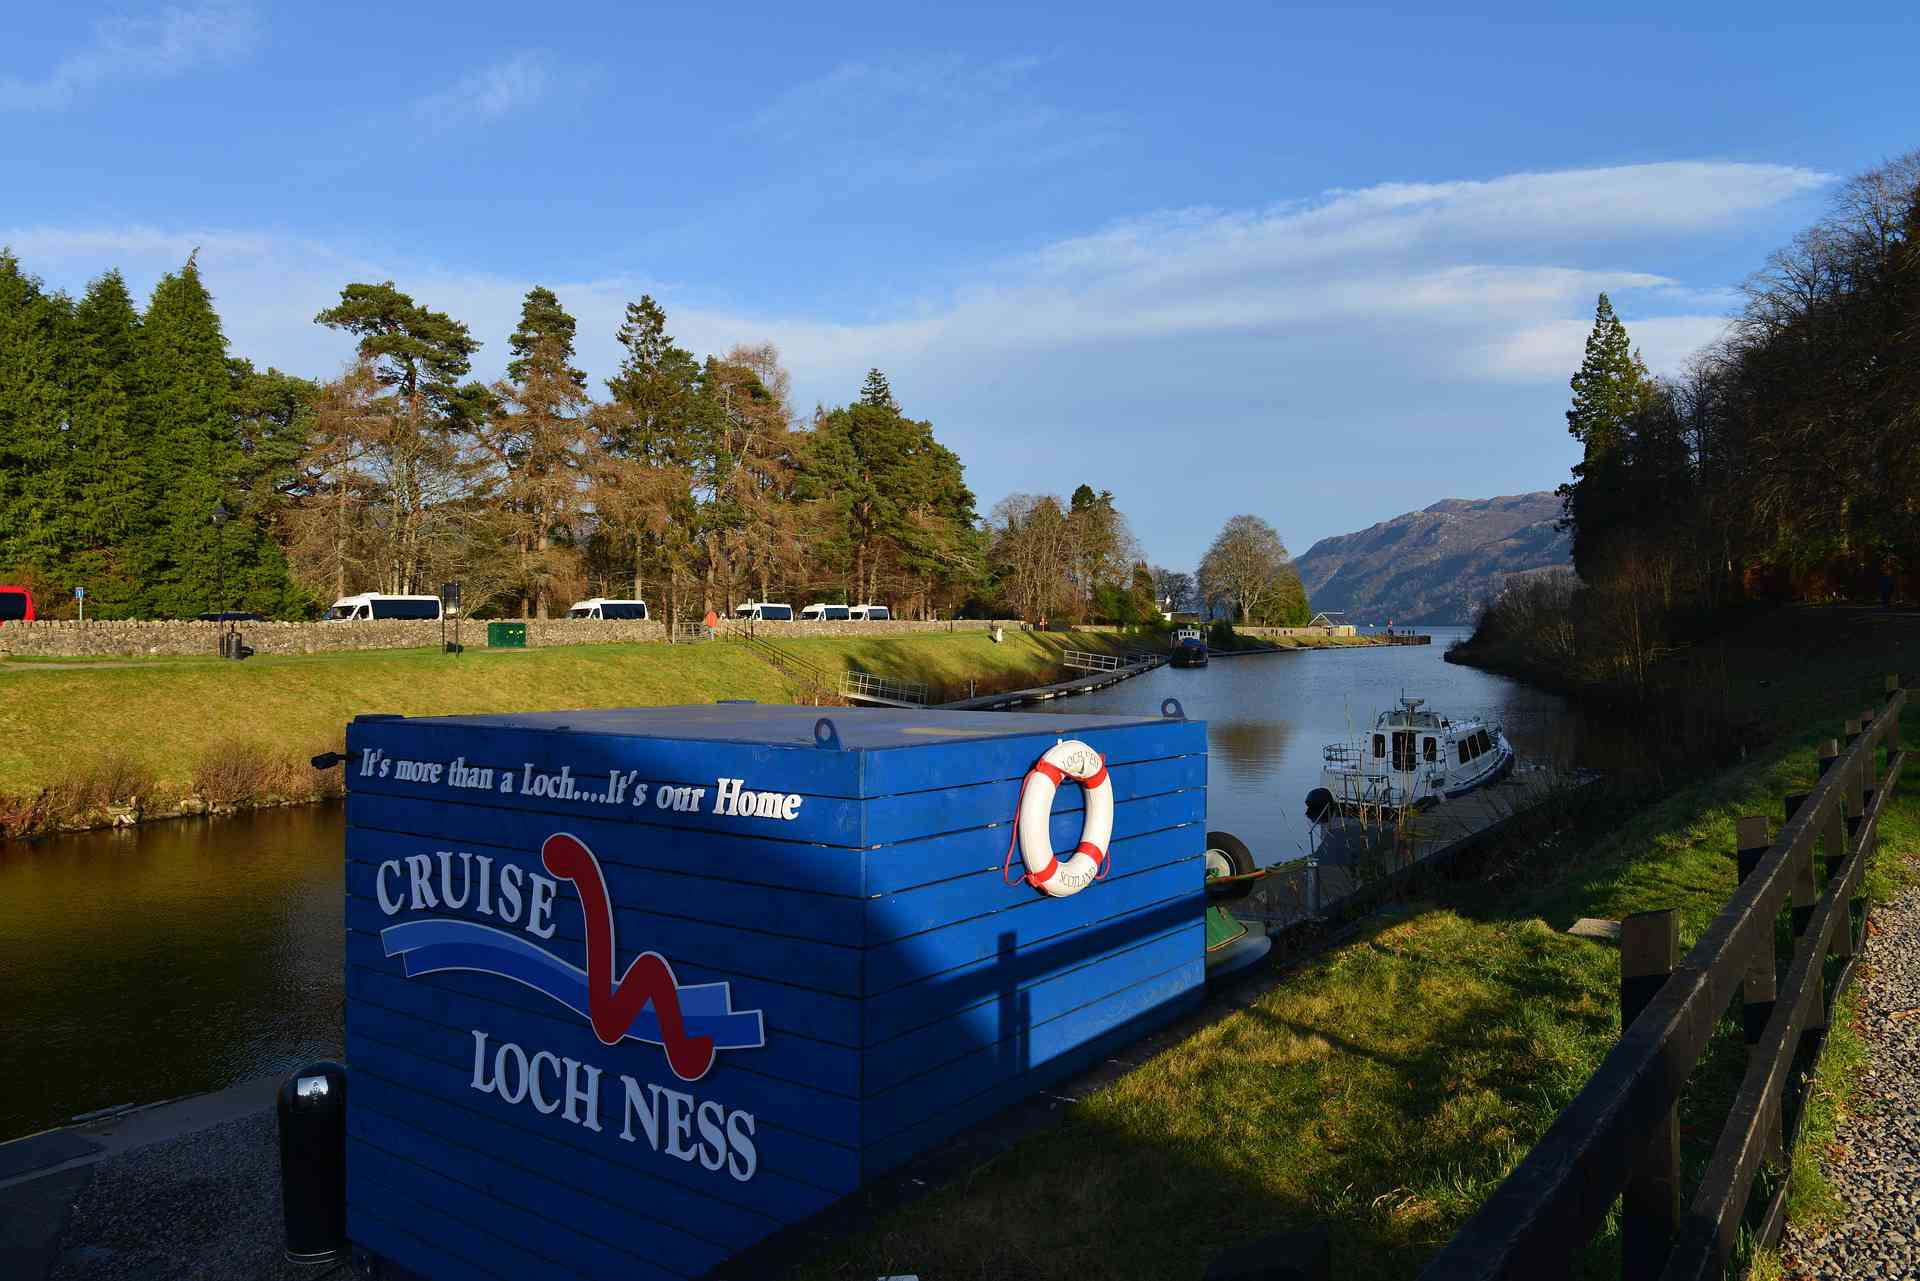 A Loch Ness tour boat docked at the lake on a bright, sunny day.